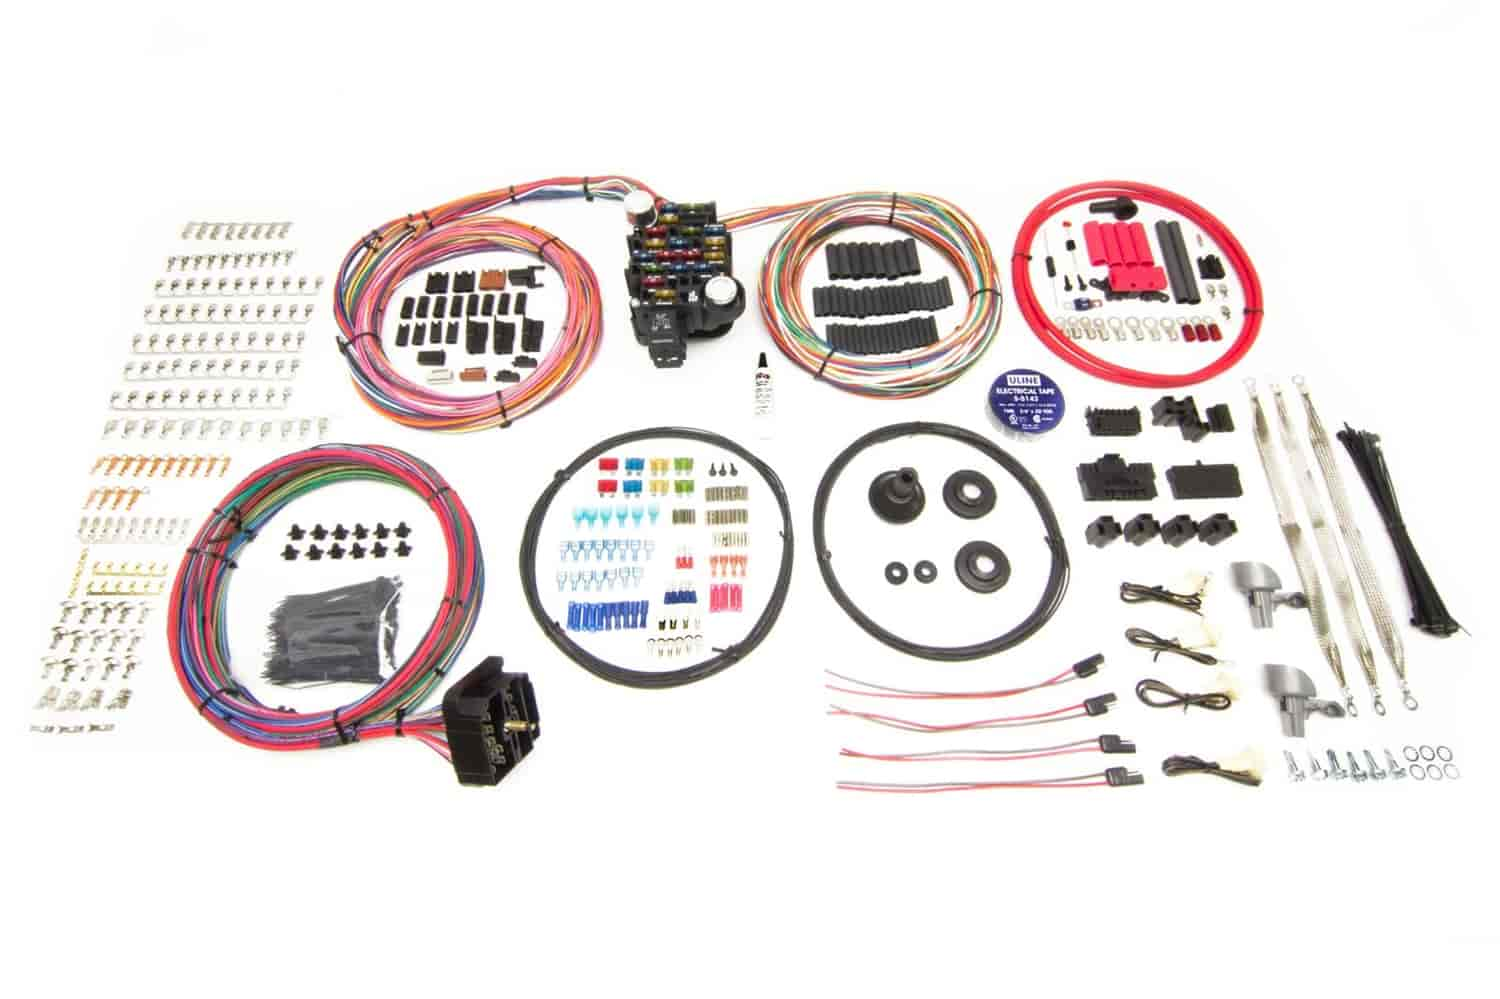 hight resolution of painless performance products pro series 25 circuit wiring harness kit